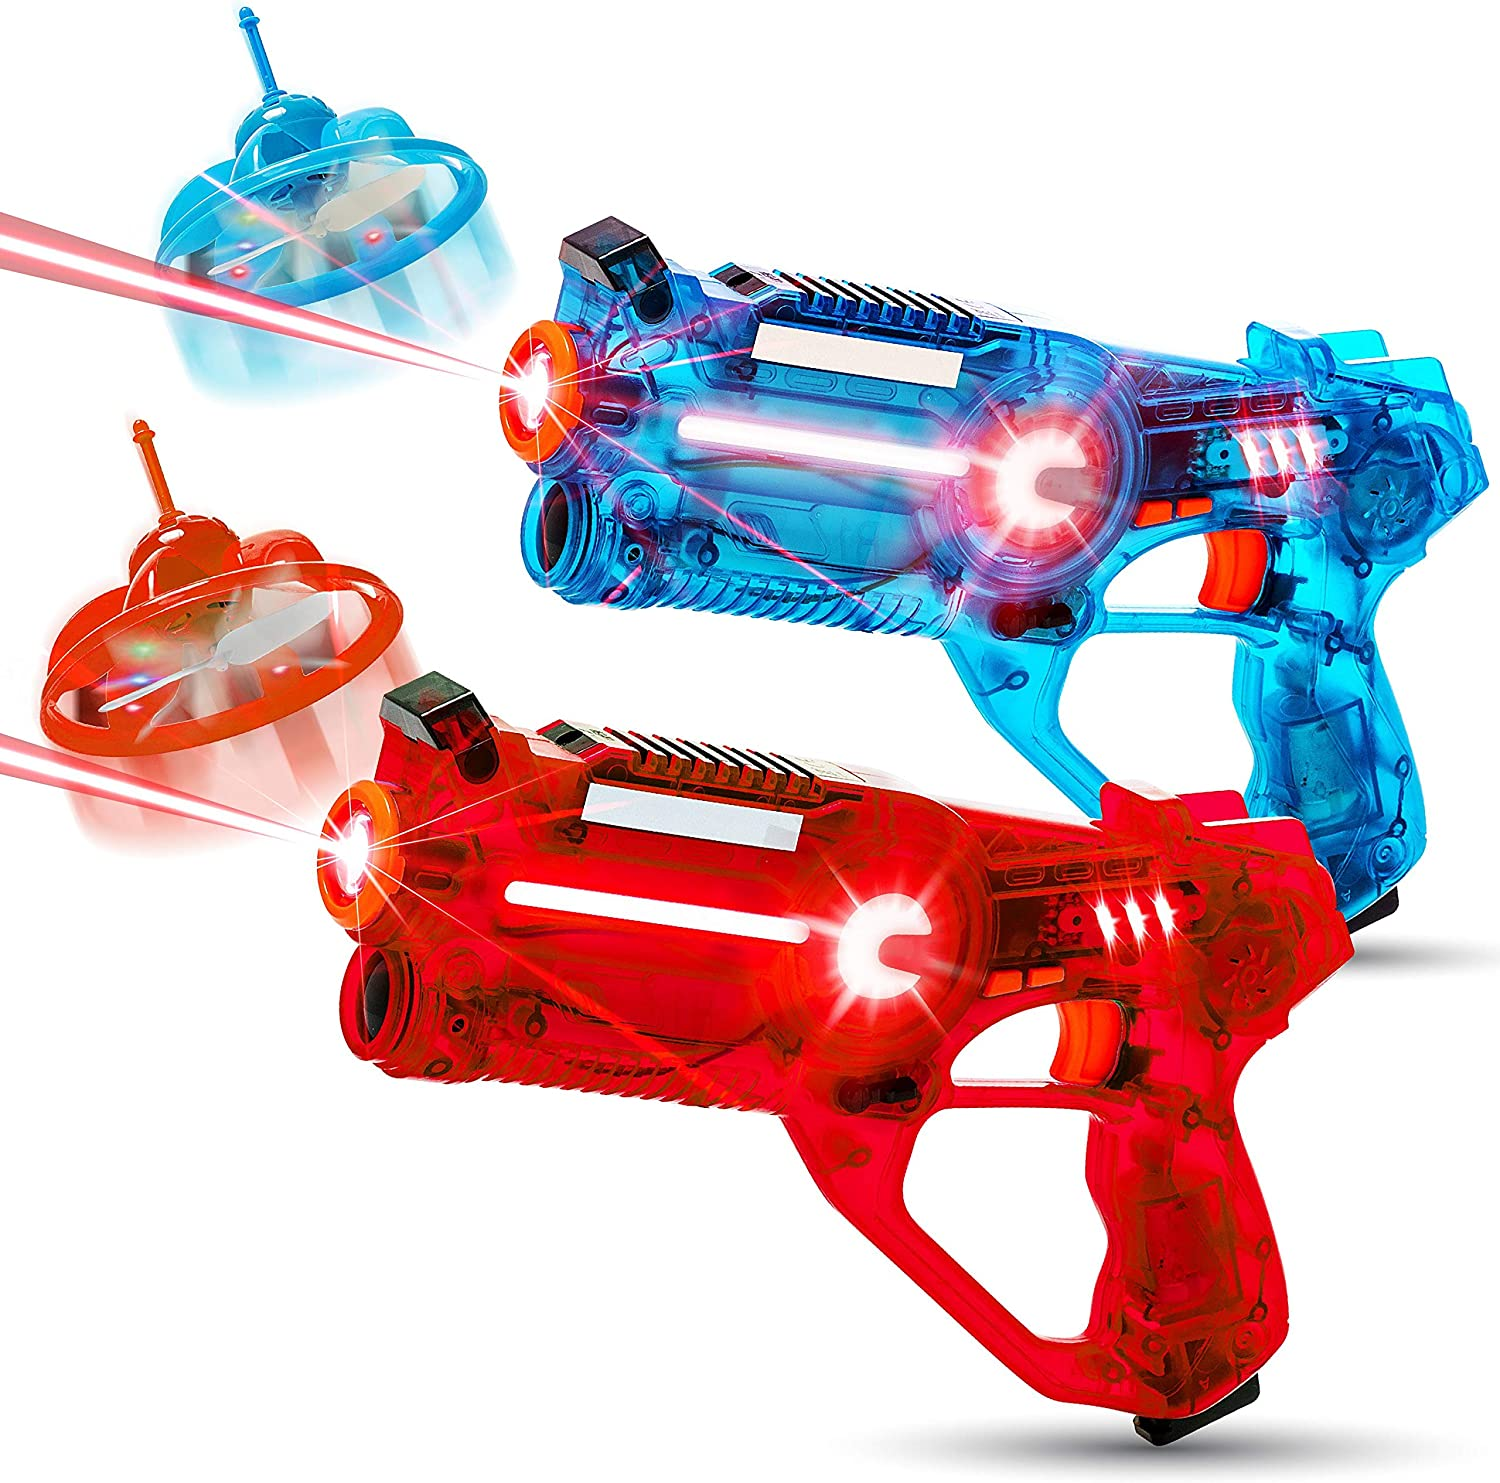 HIPHOPTOY 2-Player Kids Laser Tag Gun Game with Flying Drone Target, 2 Laser Blasters and 2 Wireless Drones, Infrared Shooting Games with LEDs and Sounds, Best Gift for Boys Ages 5, 6, 7, 8, 9, 10